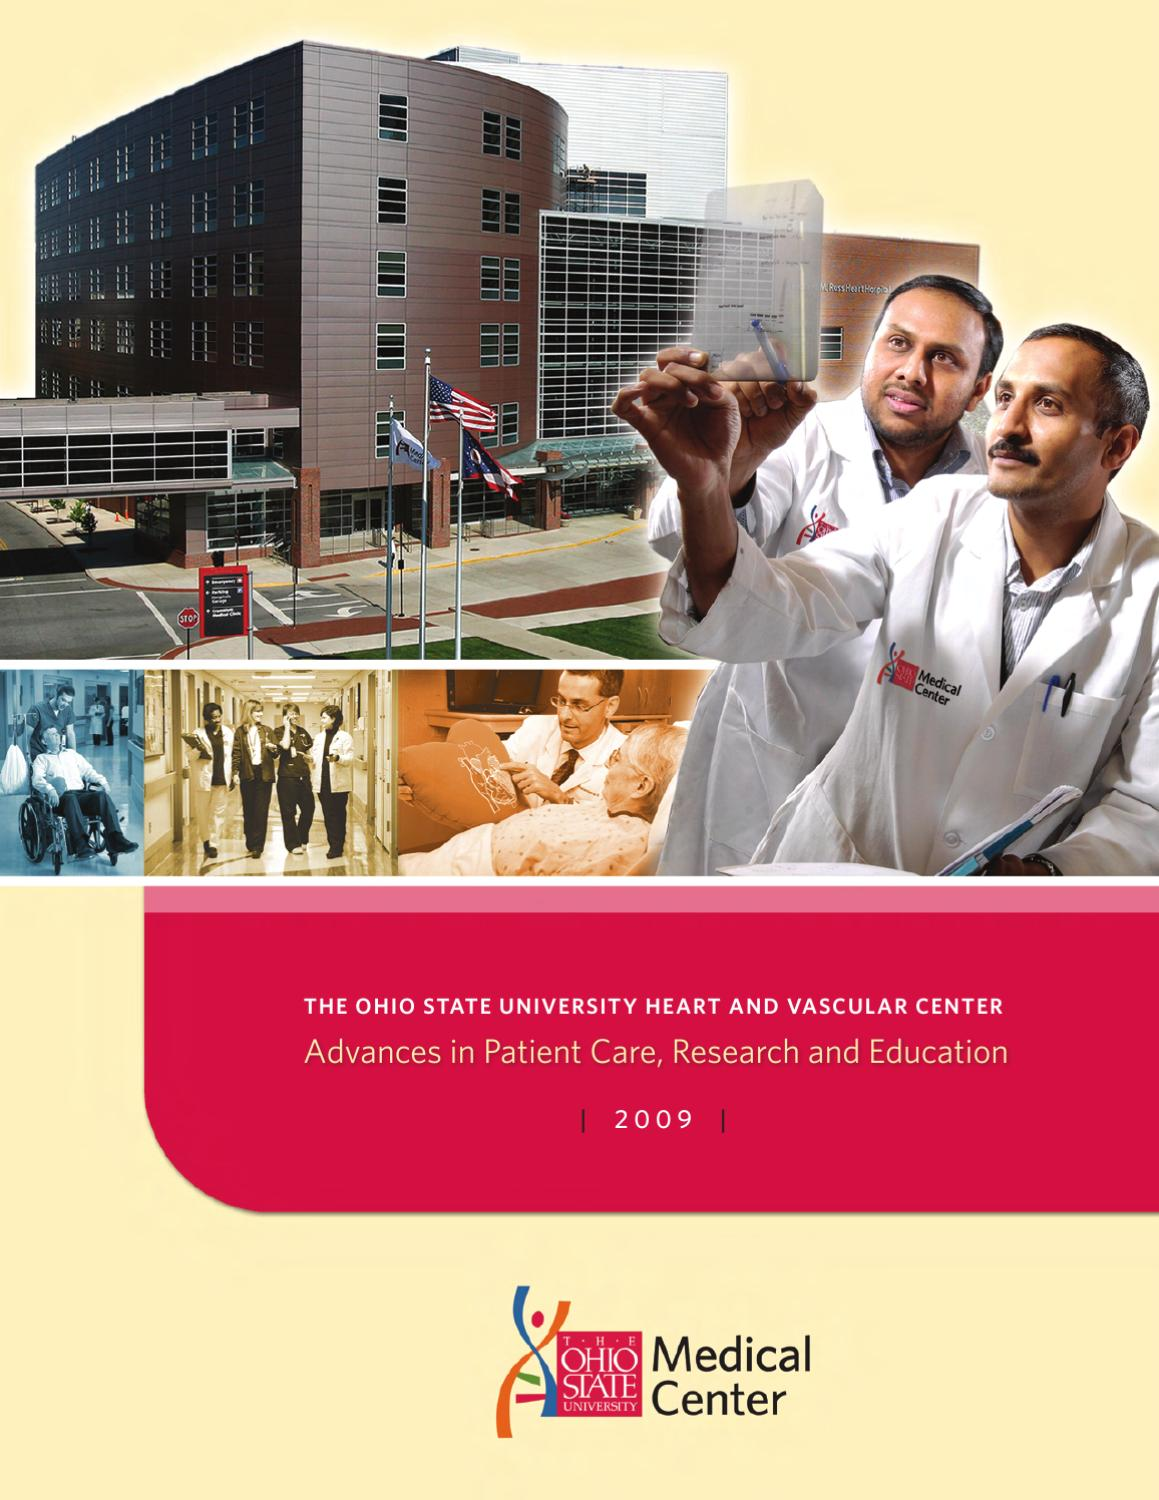 ohio state university heart and vascular center advances in patient care research and